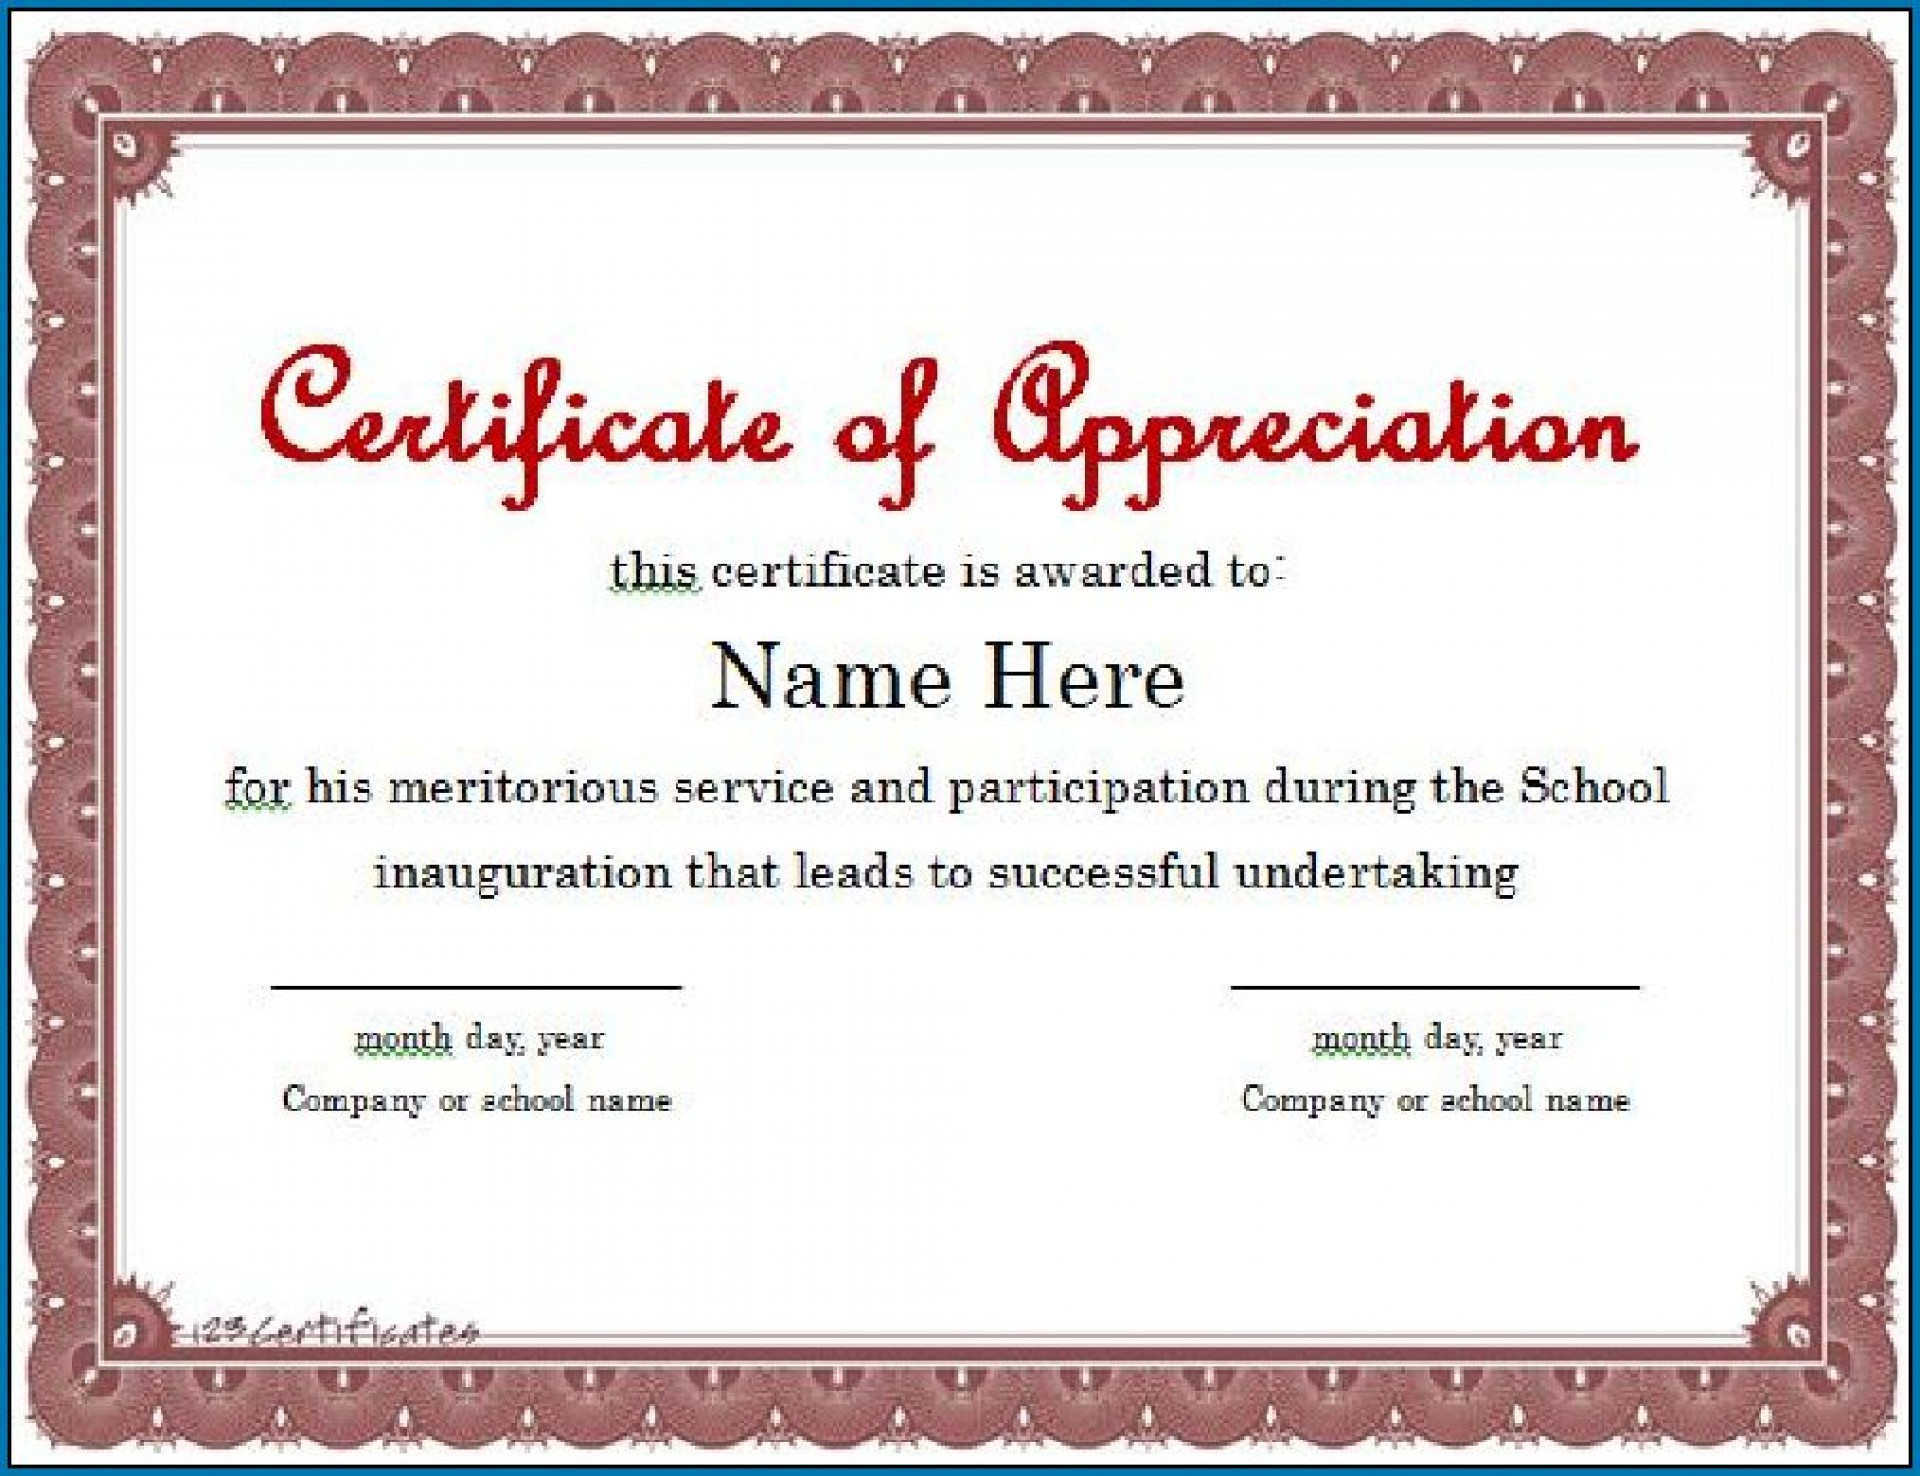 Printable Template For Certificate Of Appreciation